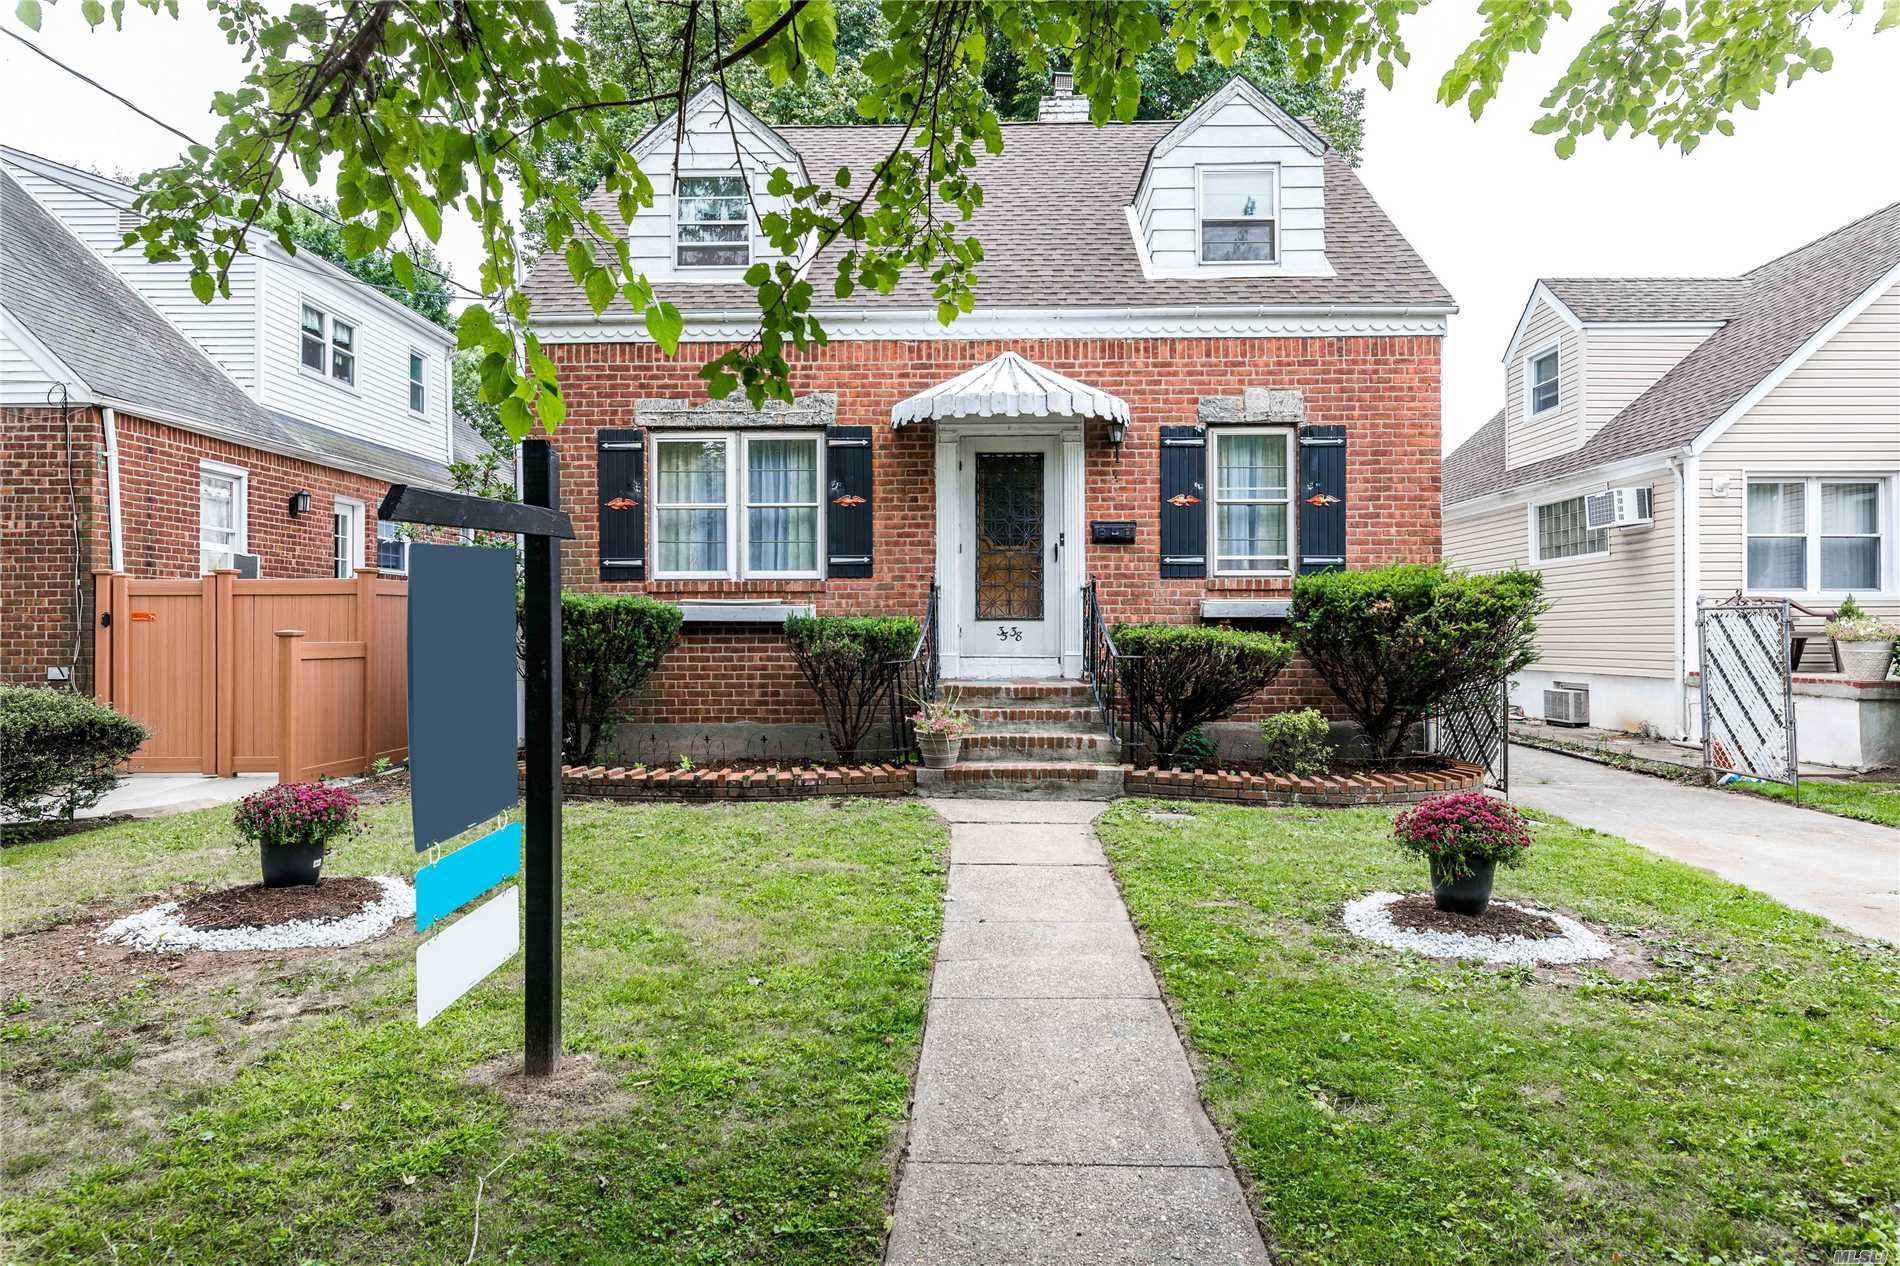 Bayside One Family Brick Wideline Cape Style Home ....In Desirable Bayside, School Dis. 26, Freshly Painted House, Features 3 Large Bedrooms, Updated 1/2 Bath, Eat In Kitchen, Living Rm, Dining Rm, Full Basement, Enclosed Patio Area Over Looking Fenced In Backyard, Detached Garage, New Roof, Gas Cooking, Close To Major Road Ways, Public Trans, Stores, Schools.... With Your Own Personal Touch Make This Your Home !!